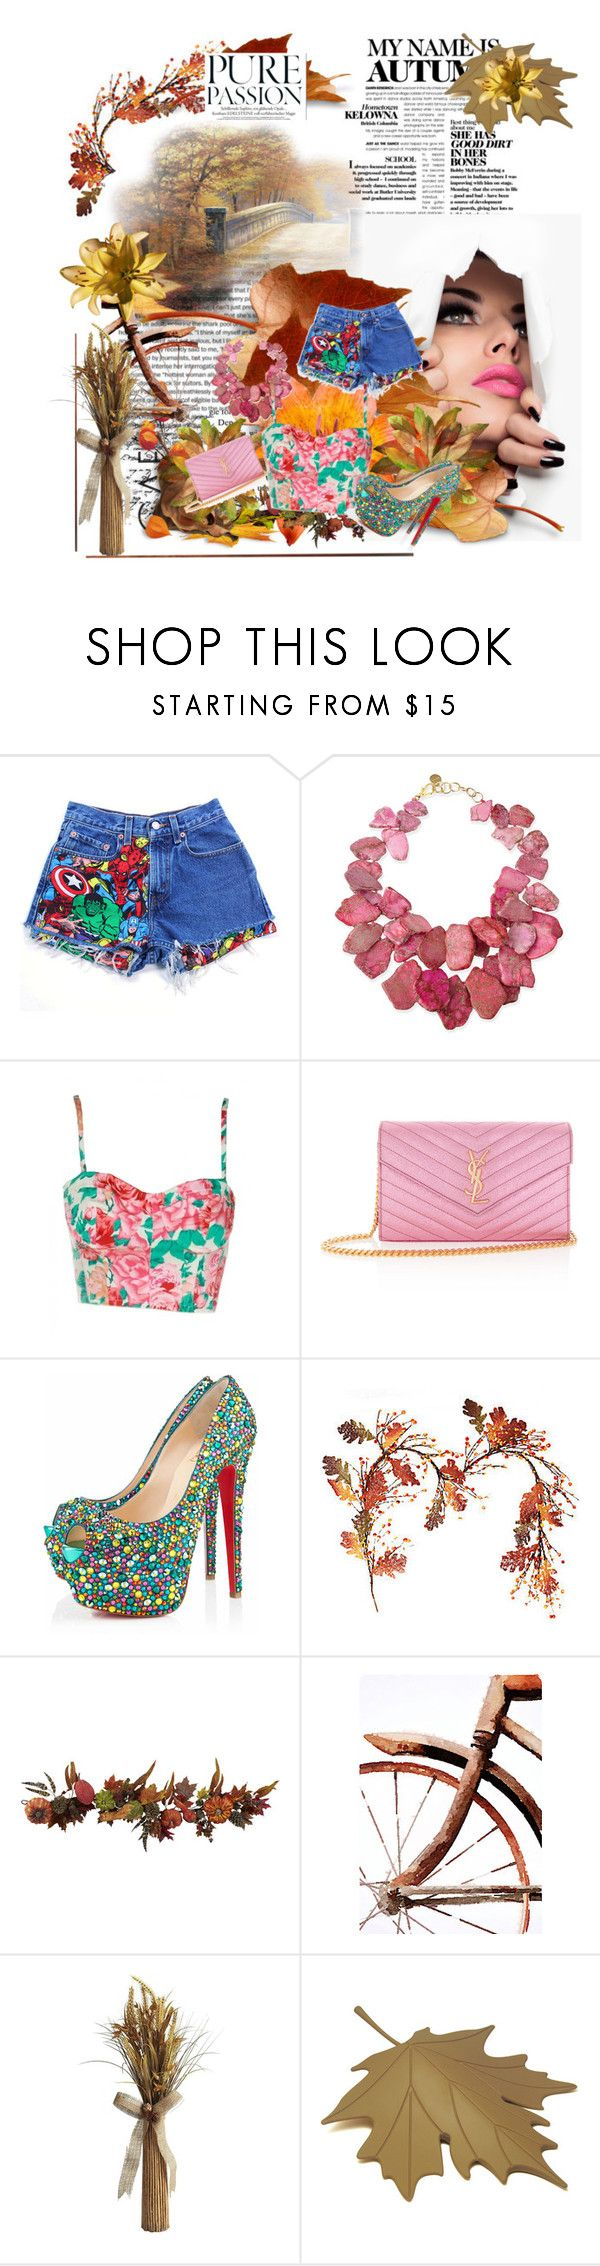 """""""PurePassion"""" by alessiia ❤ liked on Polyvore featuring ADAM, Levi's, NEST Jewelry, Yves Saint Laurent, Christian Louboutin, Nearly Natural, Pier 1 Imports and Qualy"""